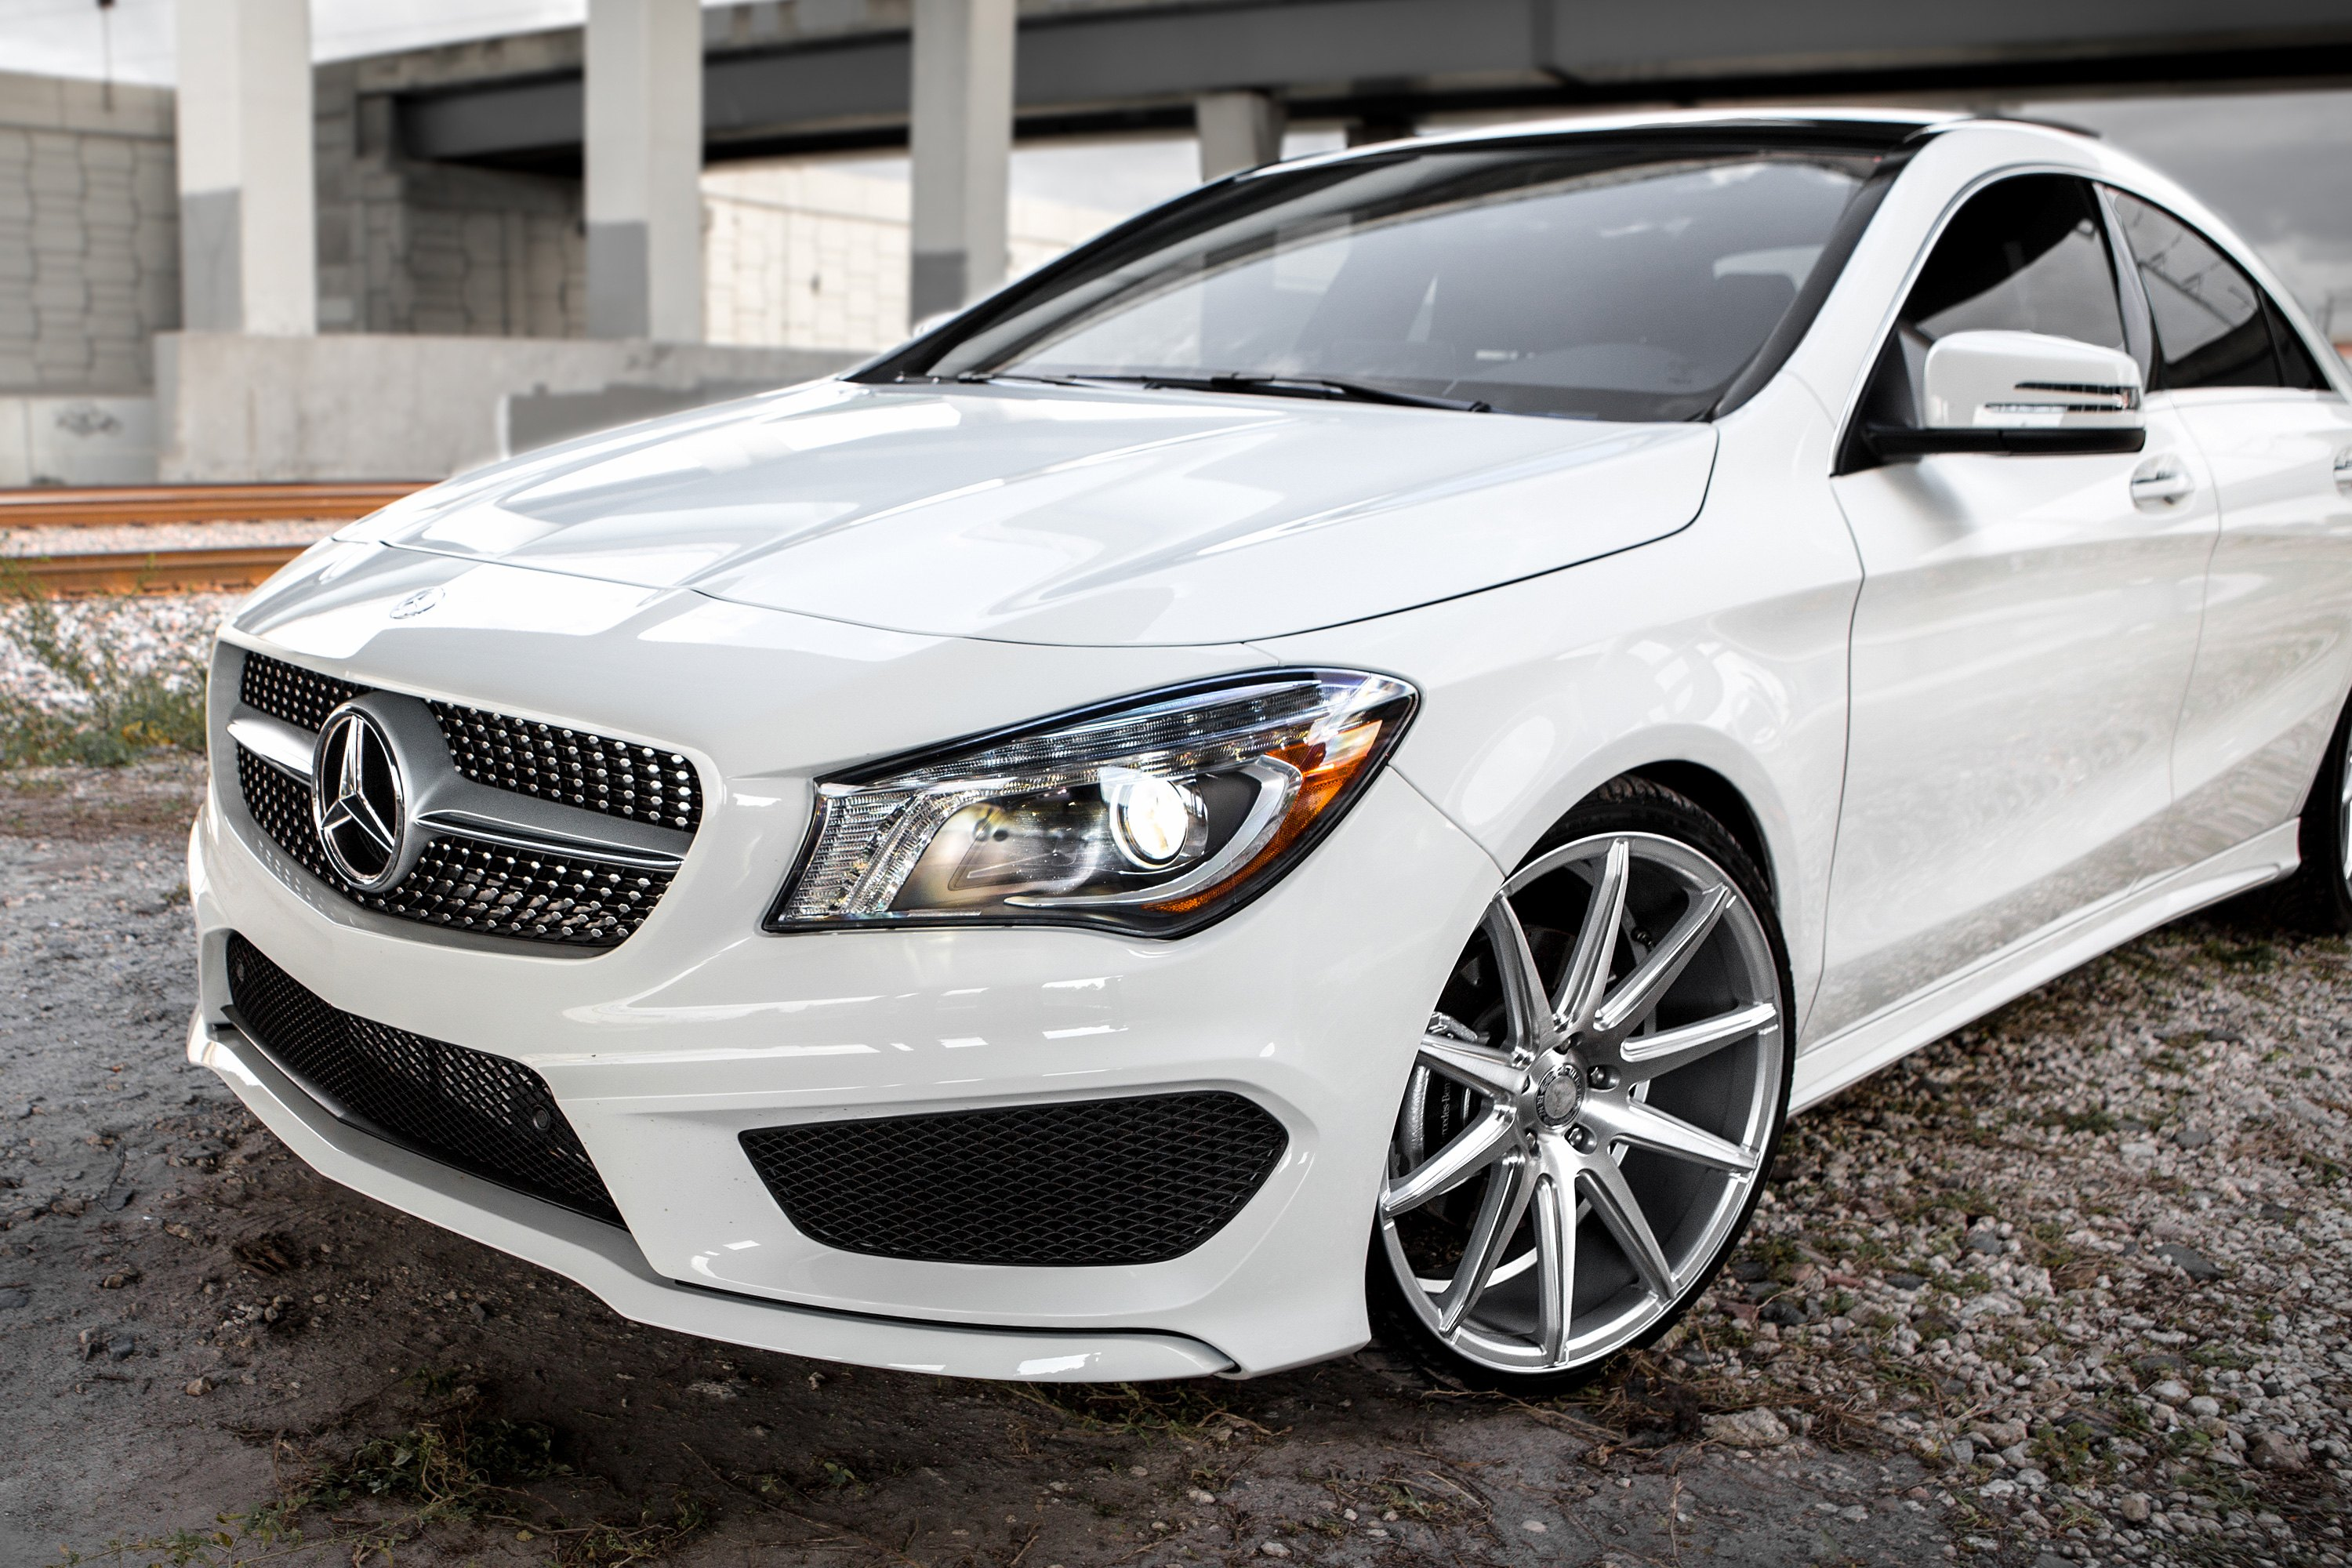 Xo sydney wheels matte silver with brushed face rims for Mercedes benz cla 350